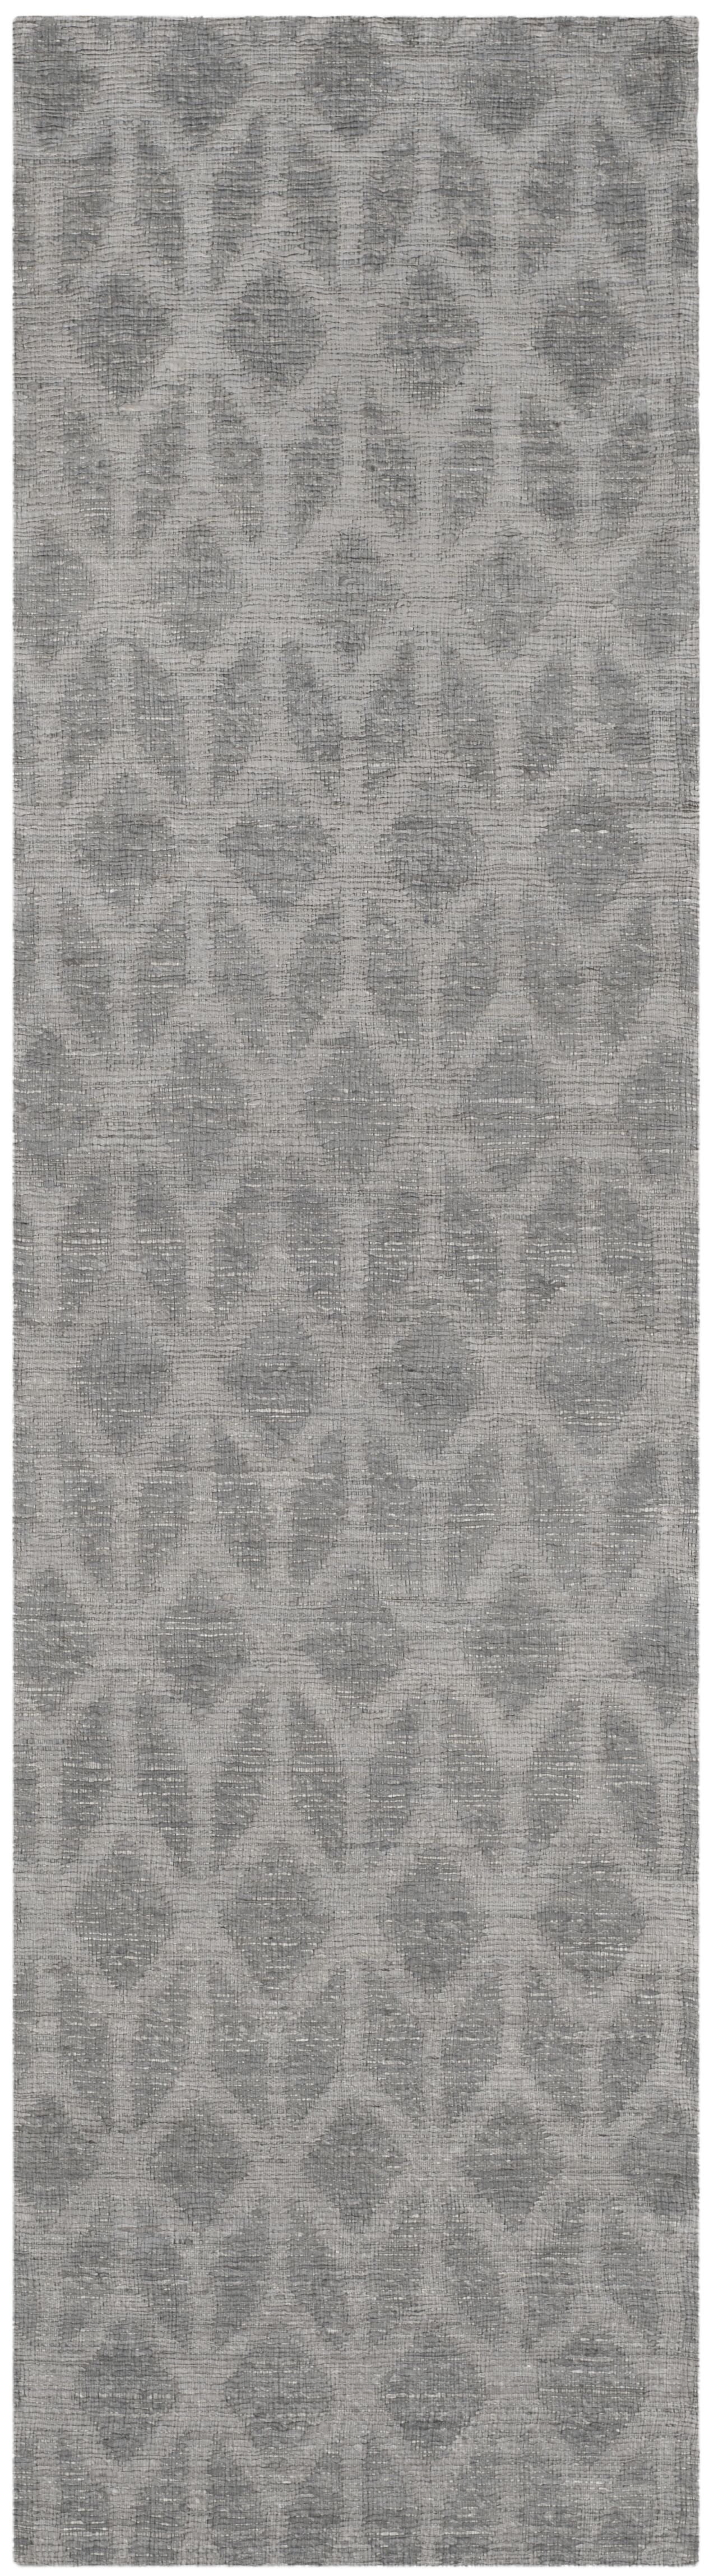 Gilchrist Hand-Woven Grey/Gold Area Rug Rug Size: Runner 2'3